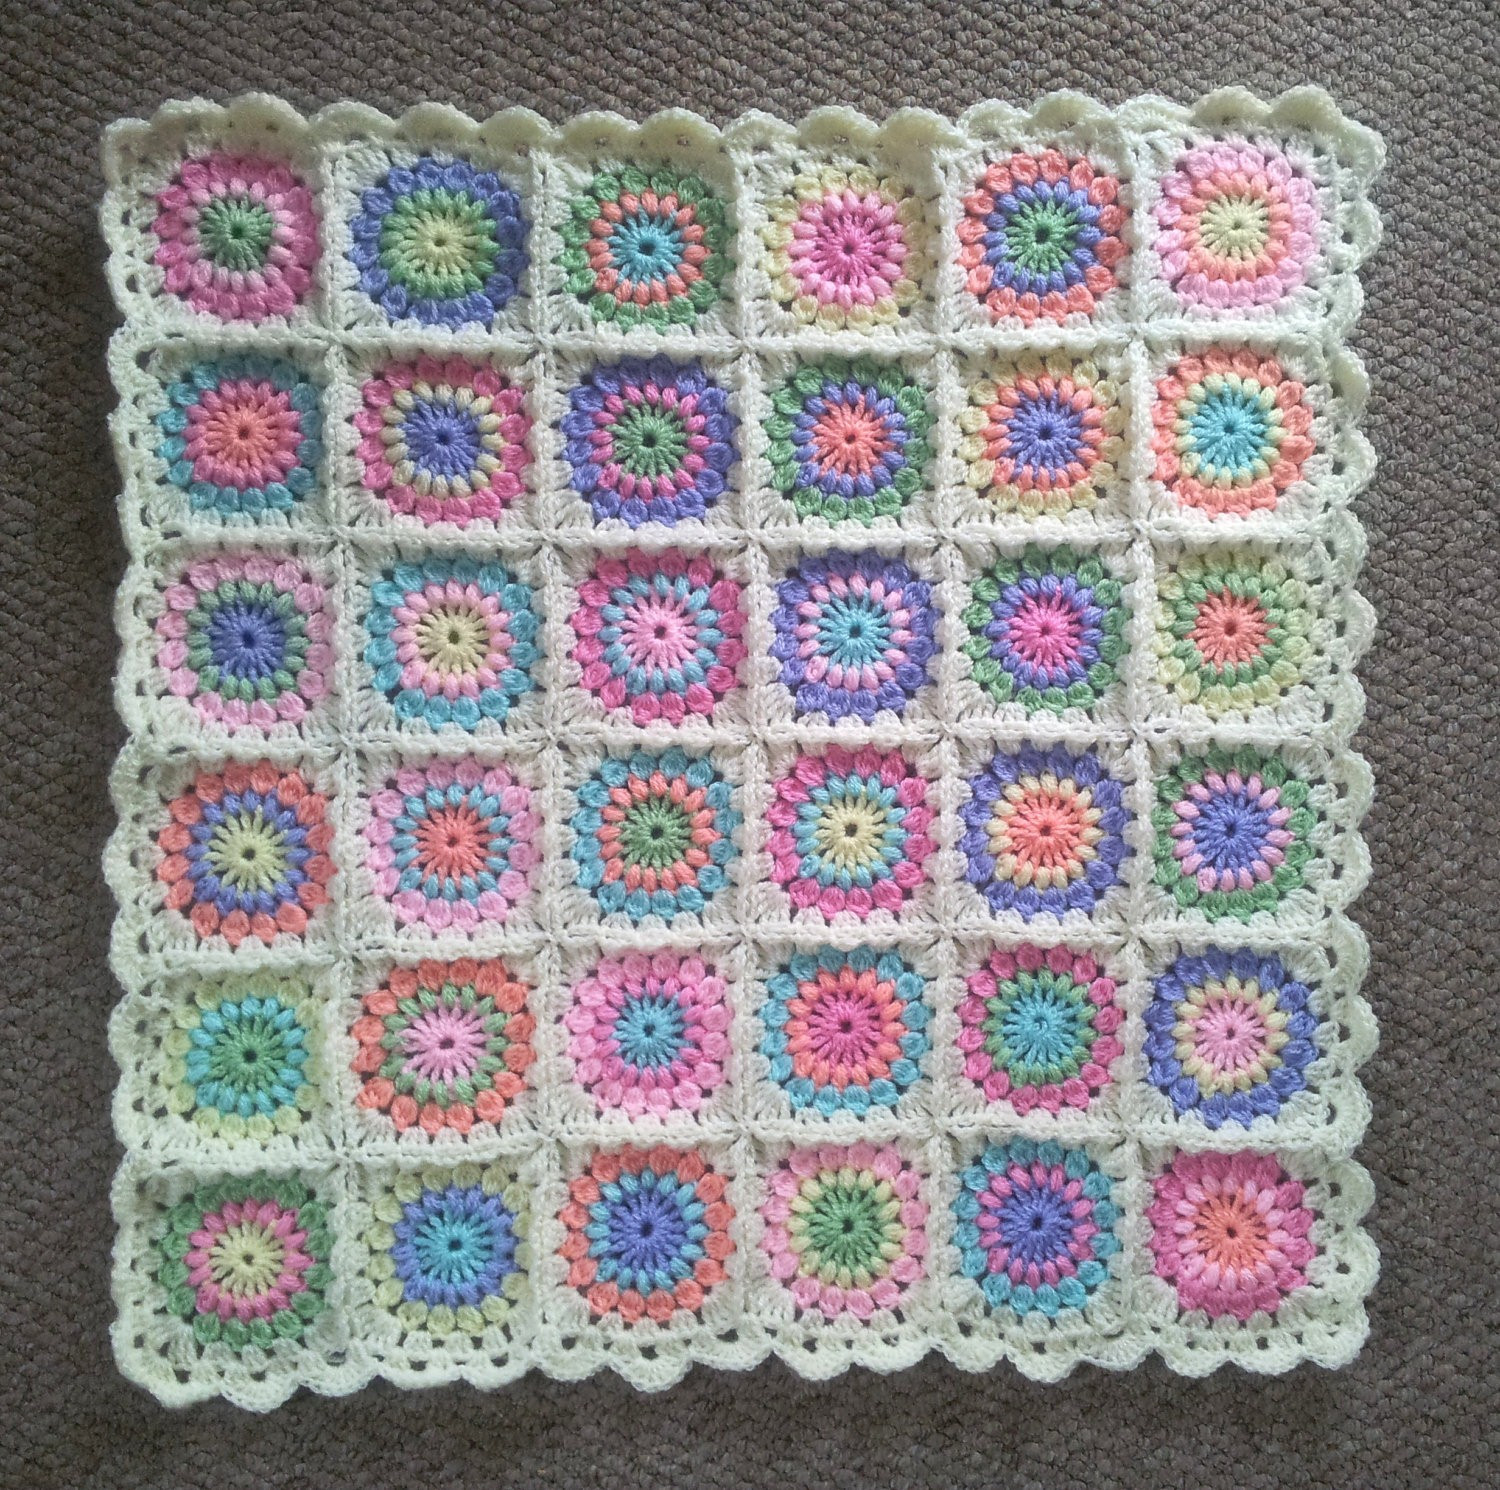 Free Crochet Baby Afghan Patterns Inspirational Free Crochet Patterns for Baby Blankets Easy Of Superb 46 Photos Free Crochet Baby Afghan Patterns